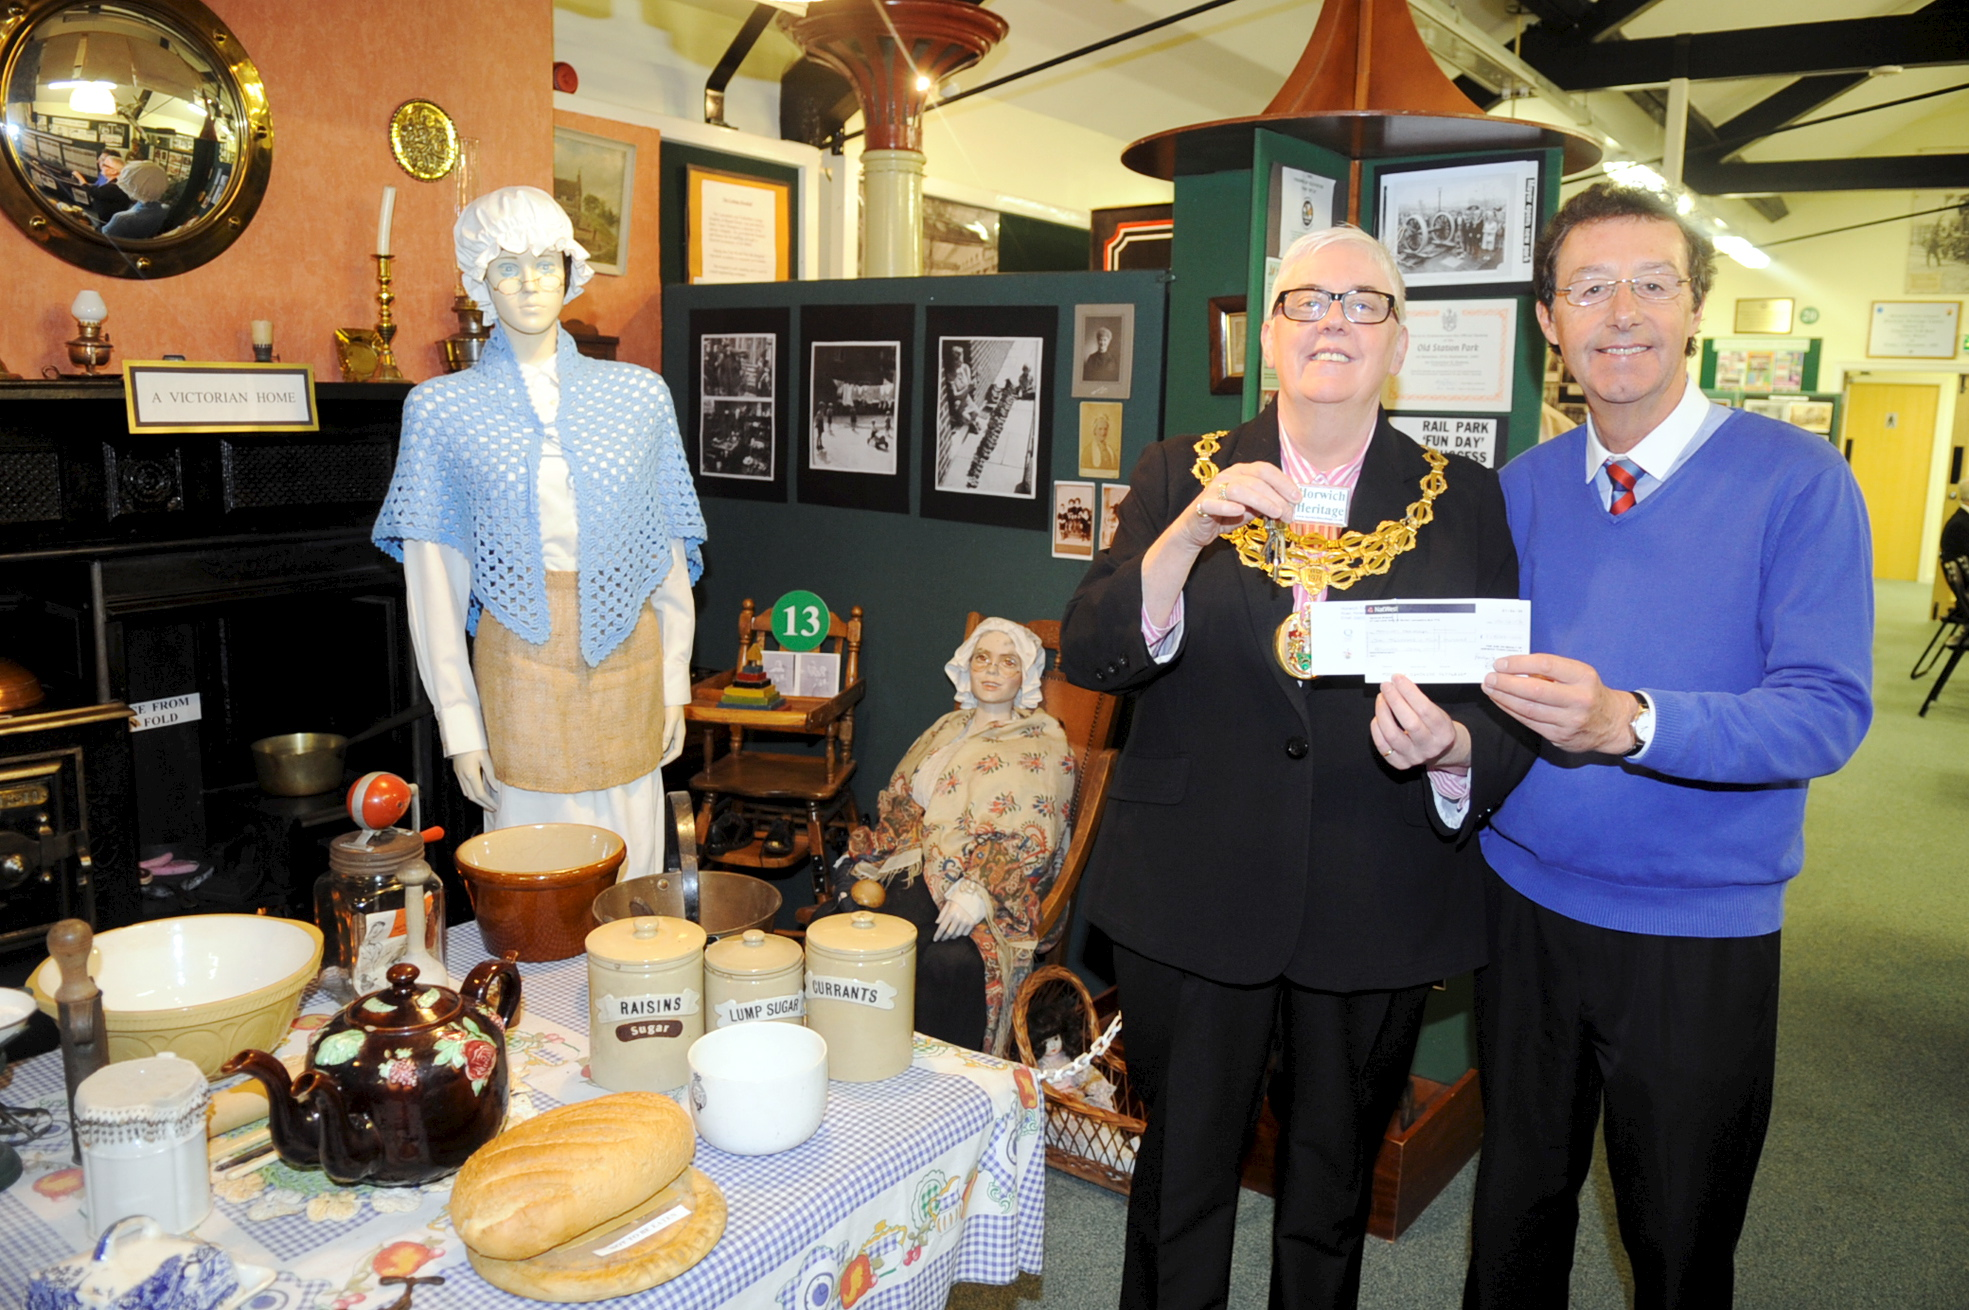 Cllr Christine Root with Stuart Whittle at the Horwich Heritage Centre